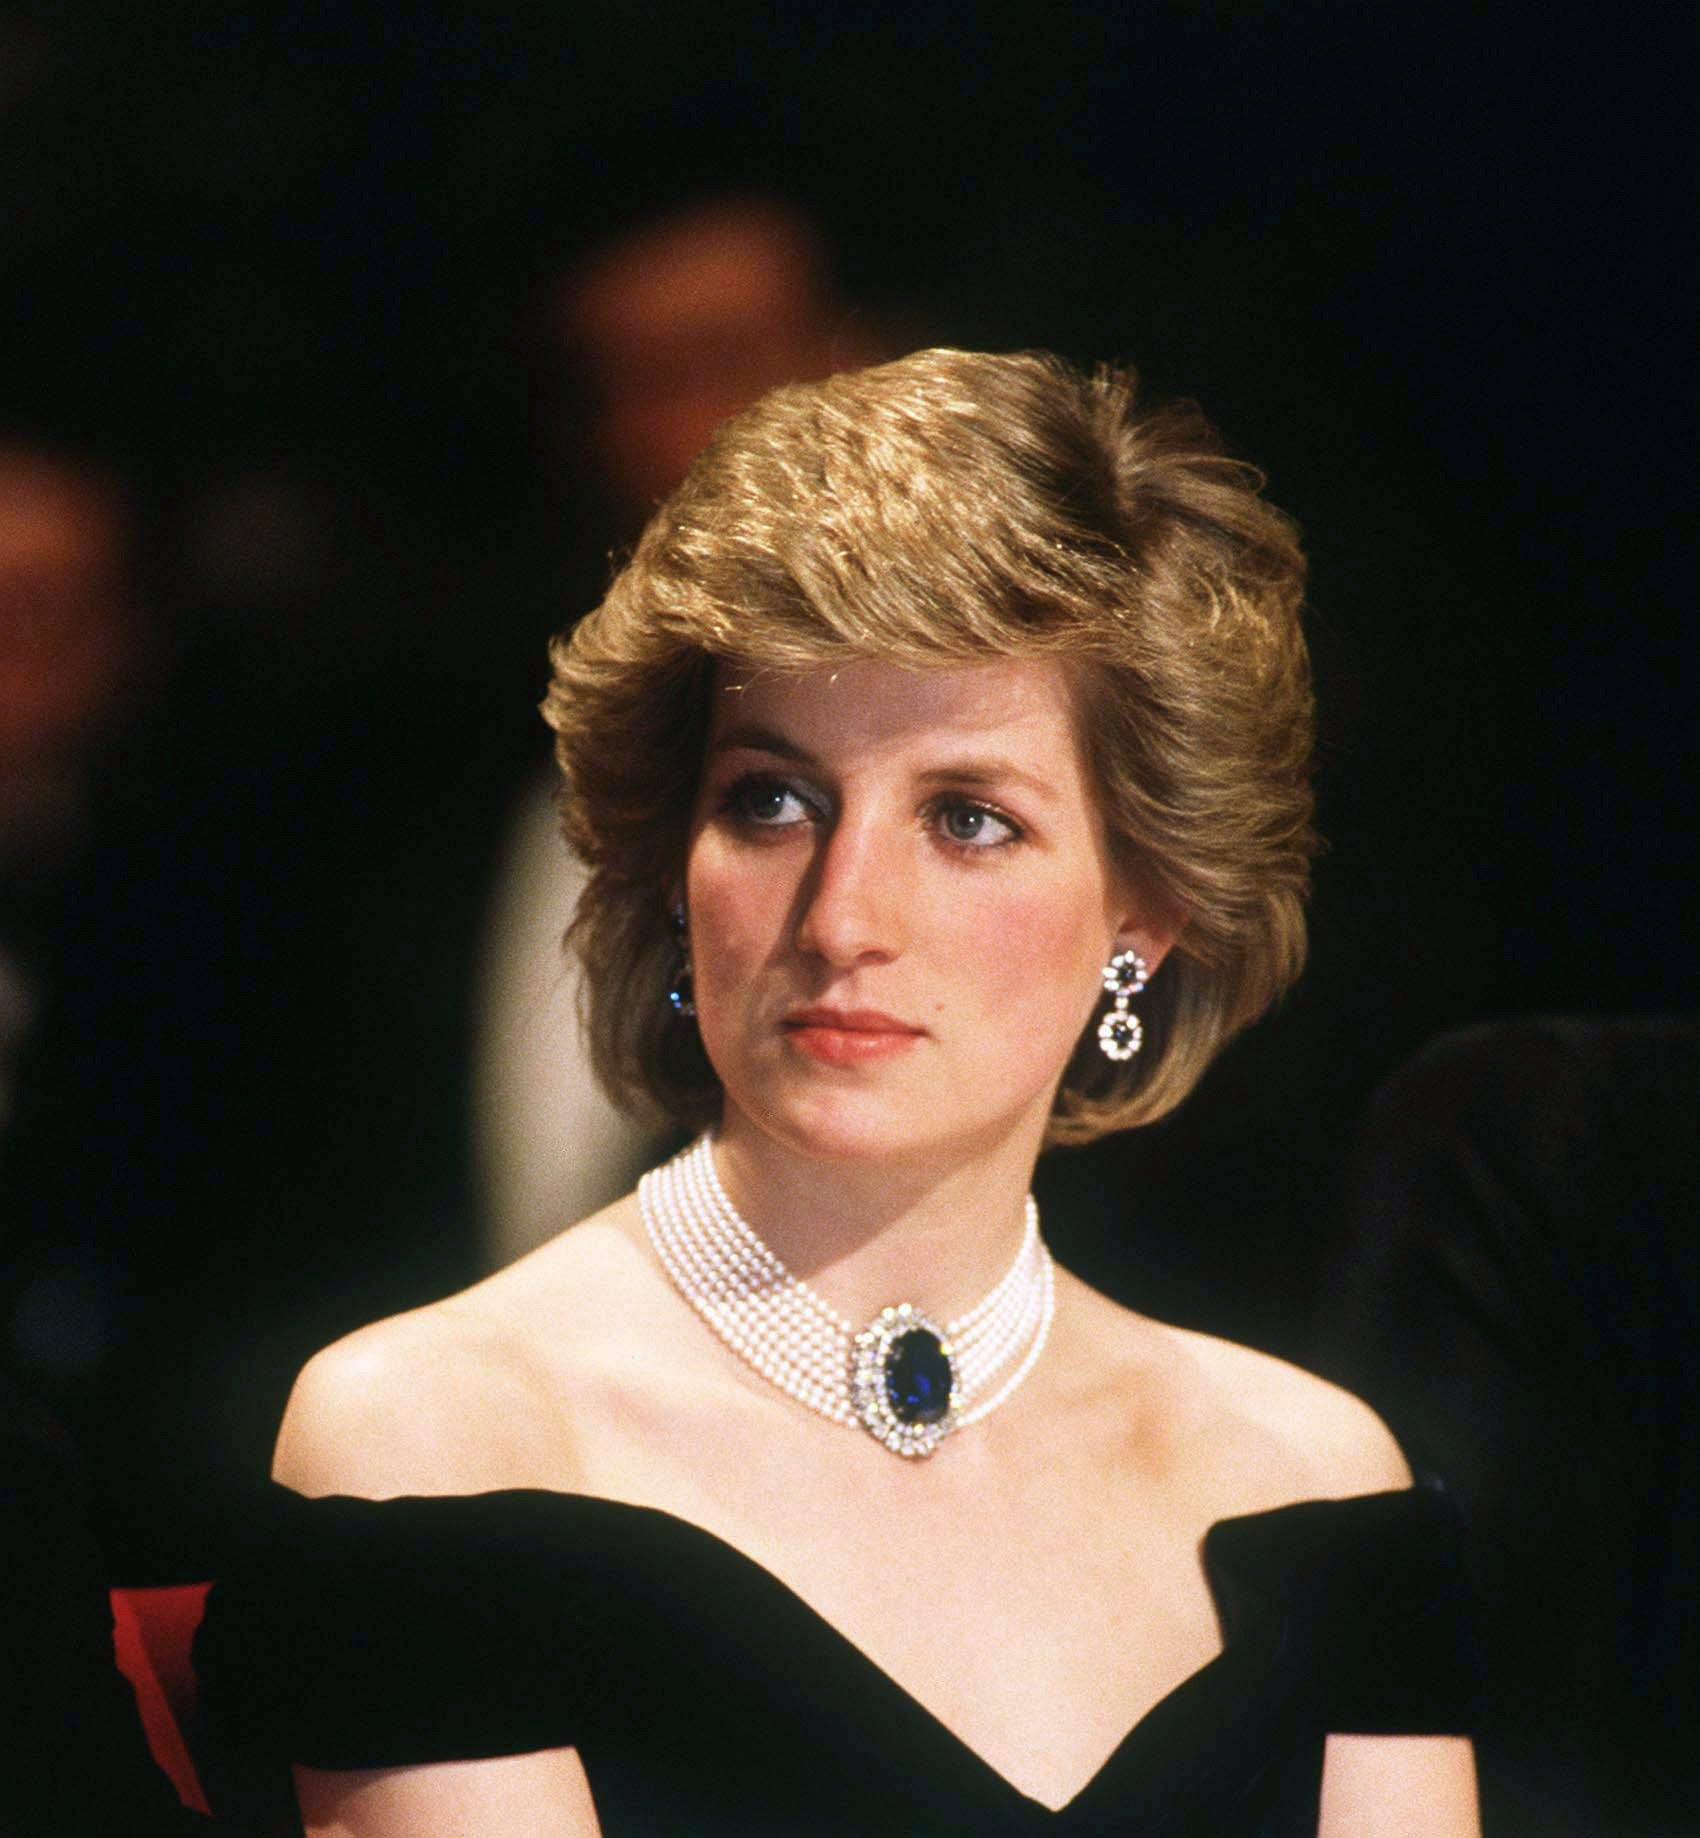 Diana, Princess of Wales, wearing a sapphire diamond and pearl necklace, attends a banquet on April 16, 1986, in Vienna, Austria. | Source: Getty Images